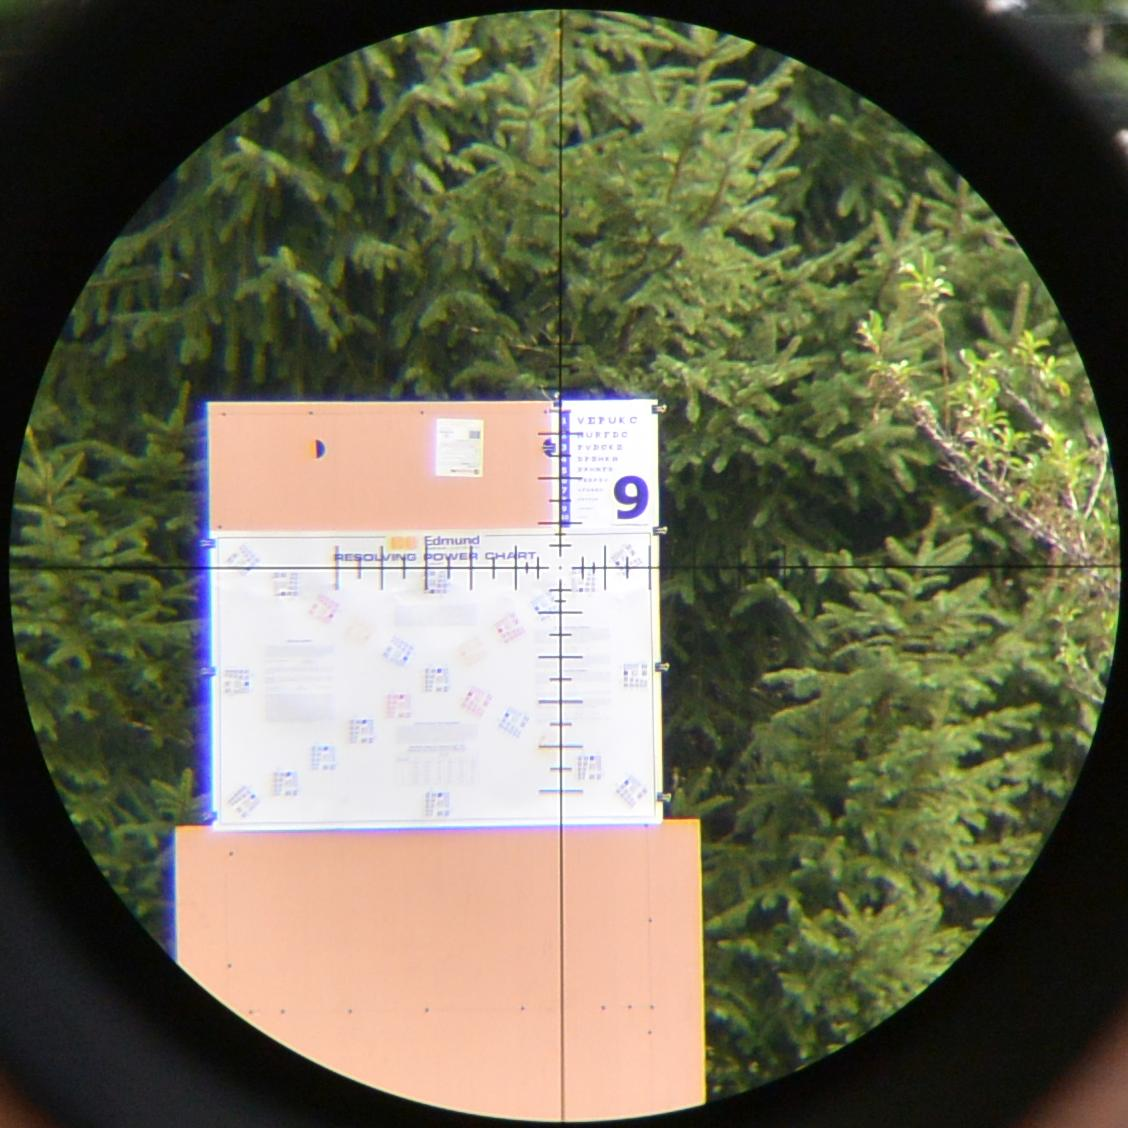 Sightron SIIISS624x50LRFFP/MH reticle on an optical test pattern